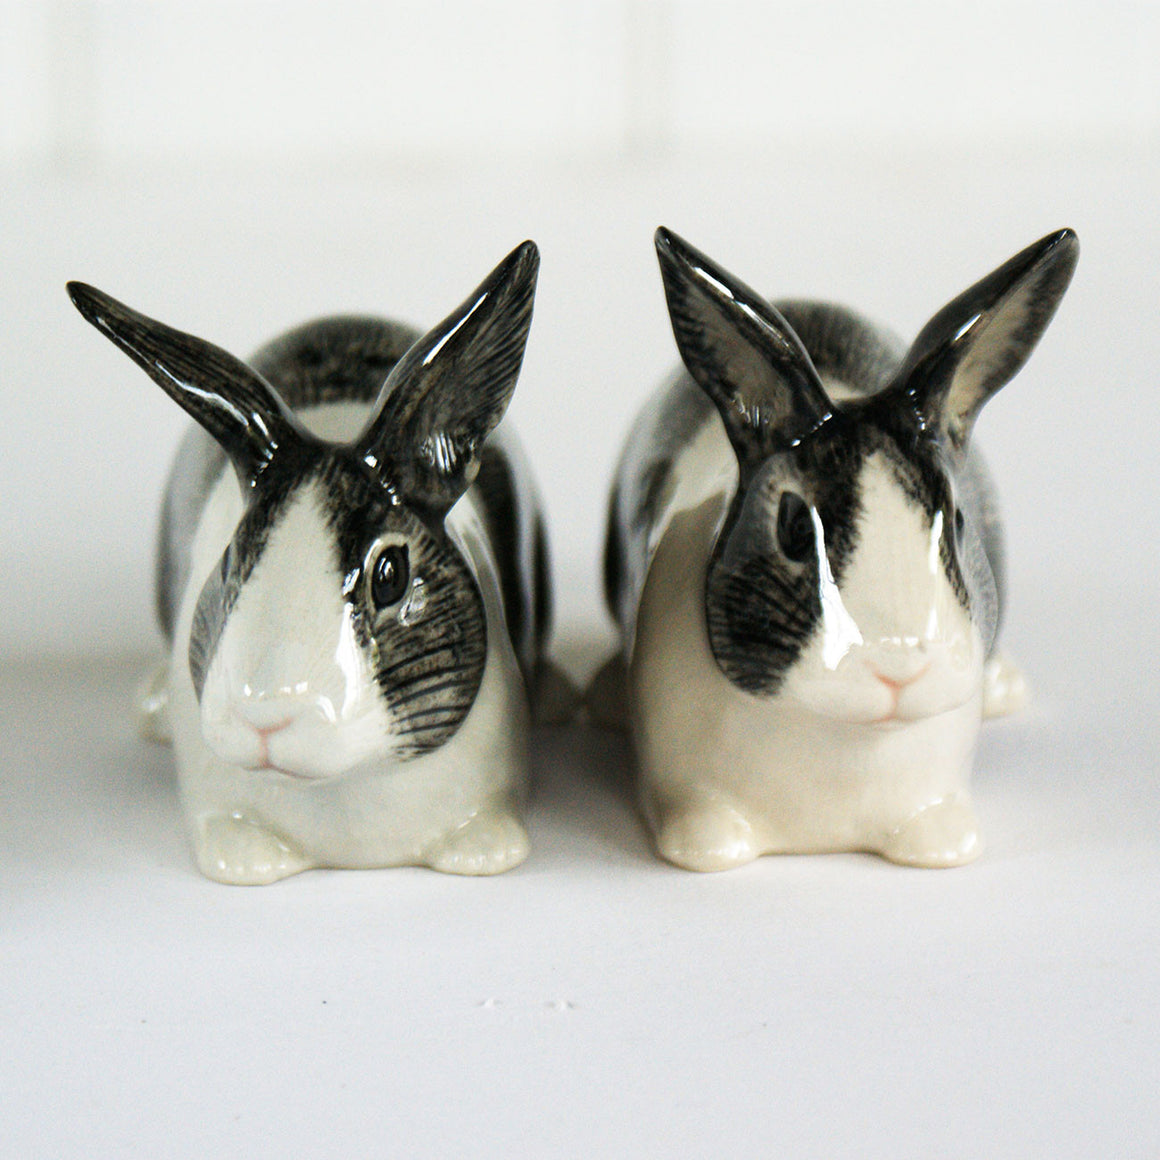 Rabbit Salt & Pepper